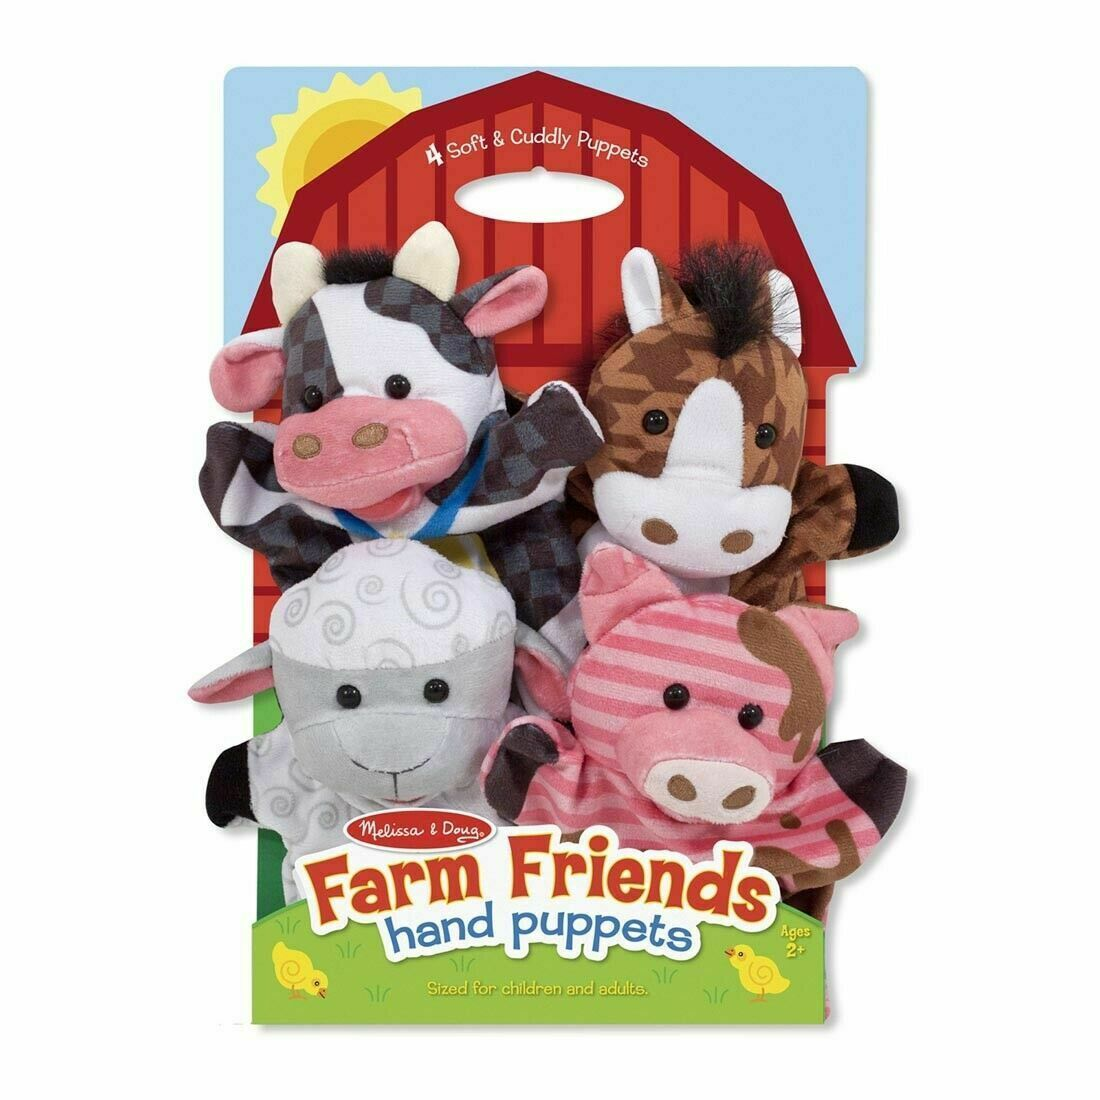 Primary image for Melissa & Doug Farm Friends Hand Puppets Ages 2+ Soft and Cuddly Plush Animals